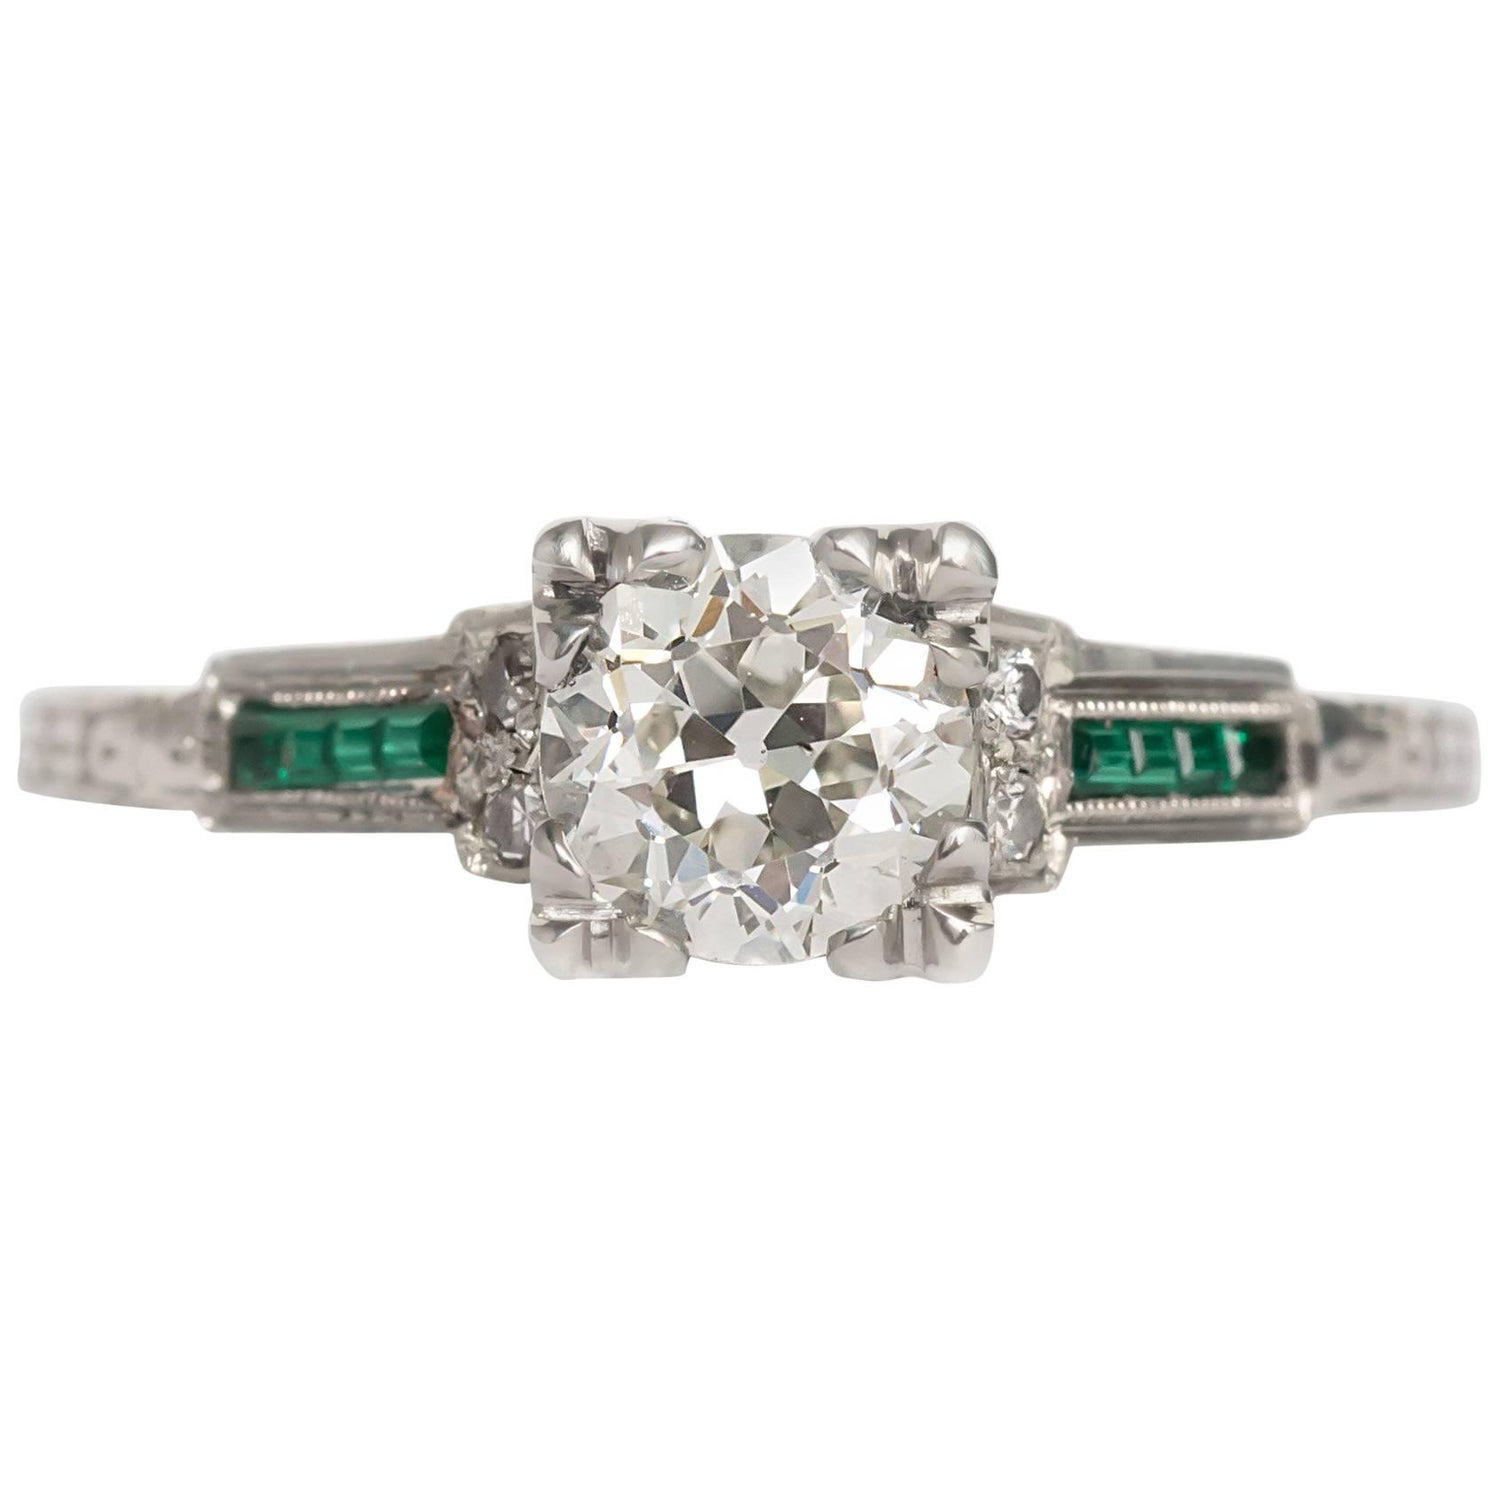 1930 white gold art deco circular brilliant diamond and emerald